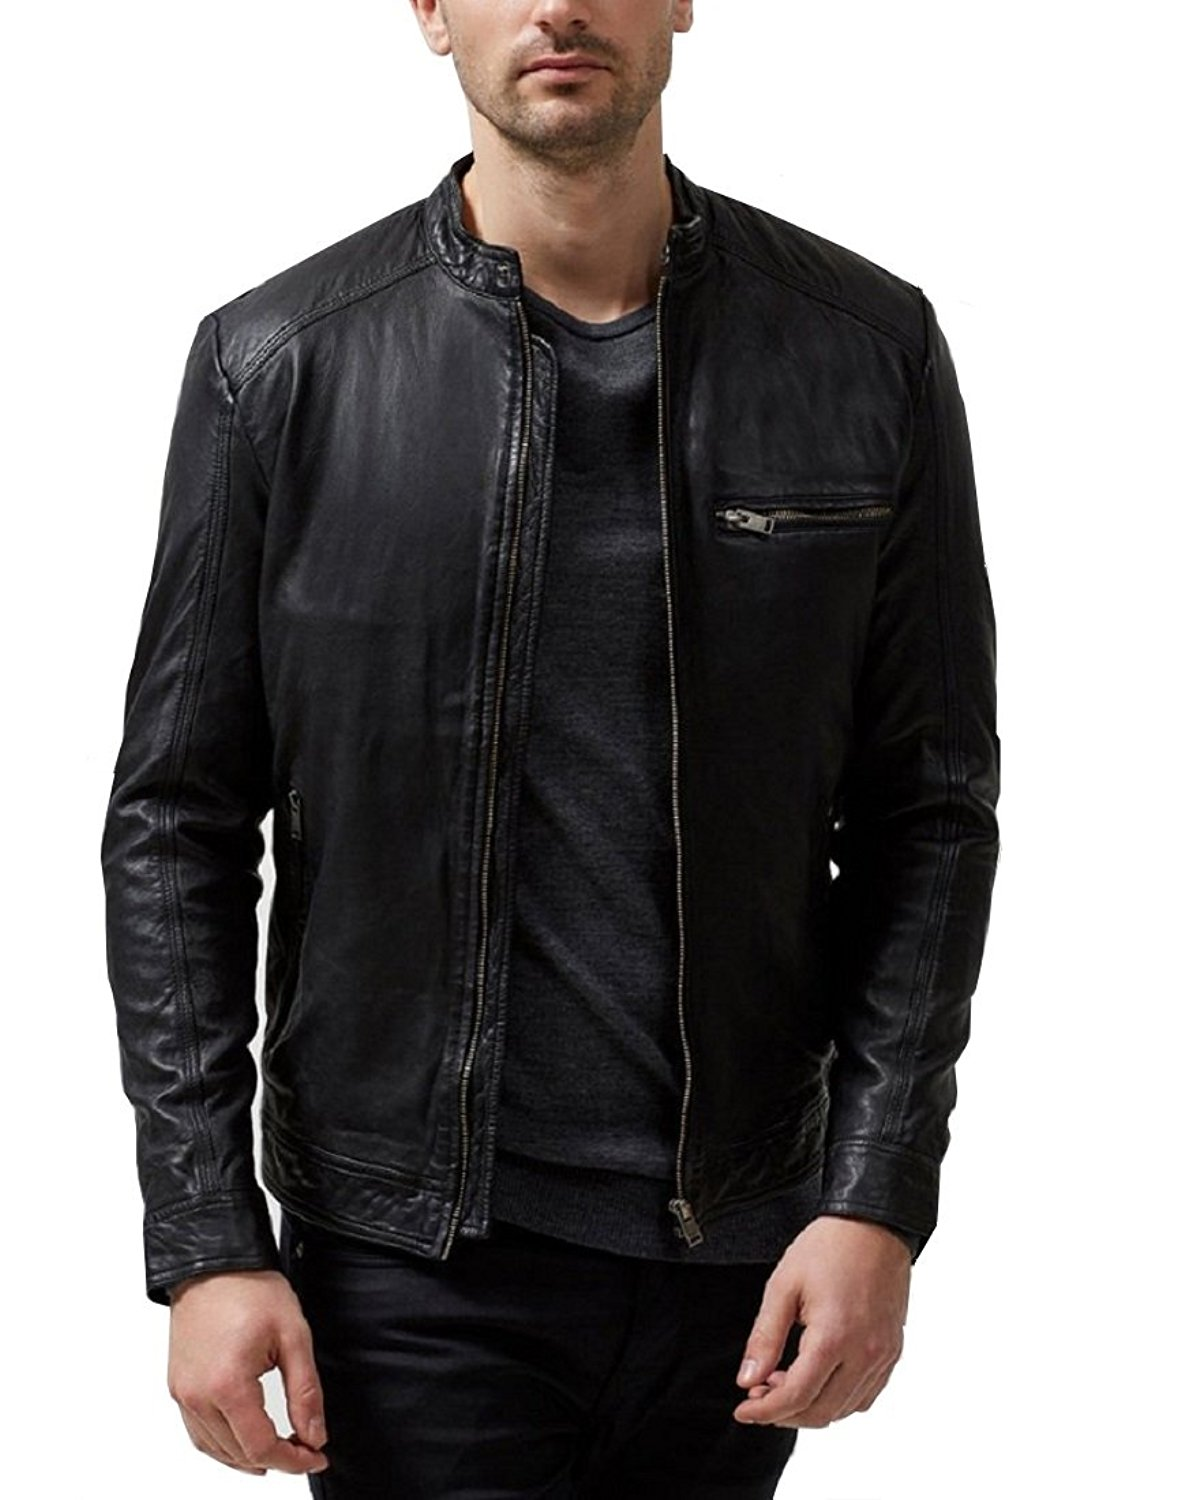 Absolute Leather Men's Sparta Black Classic Genuine Lambskin Leather Jacket